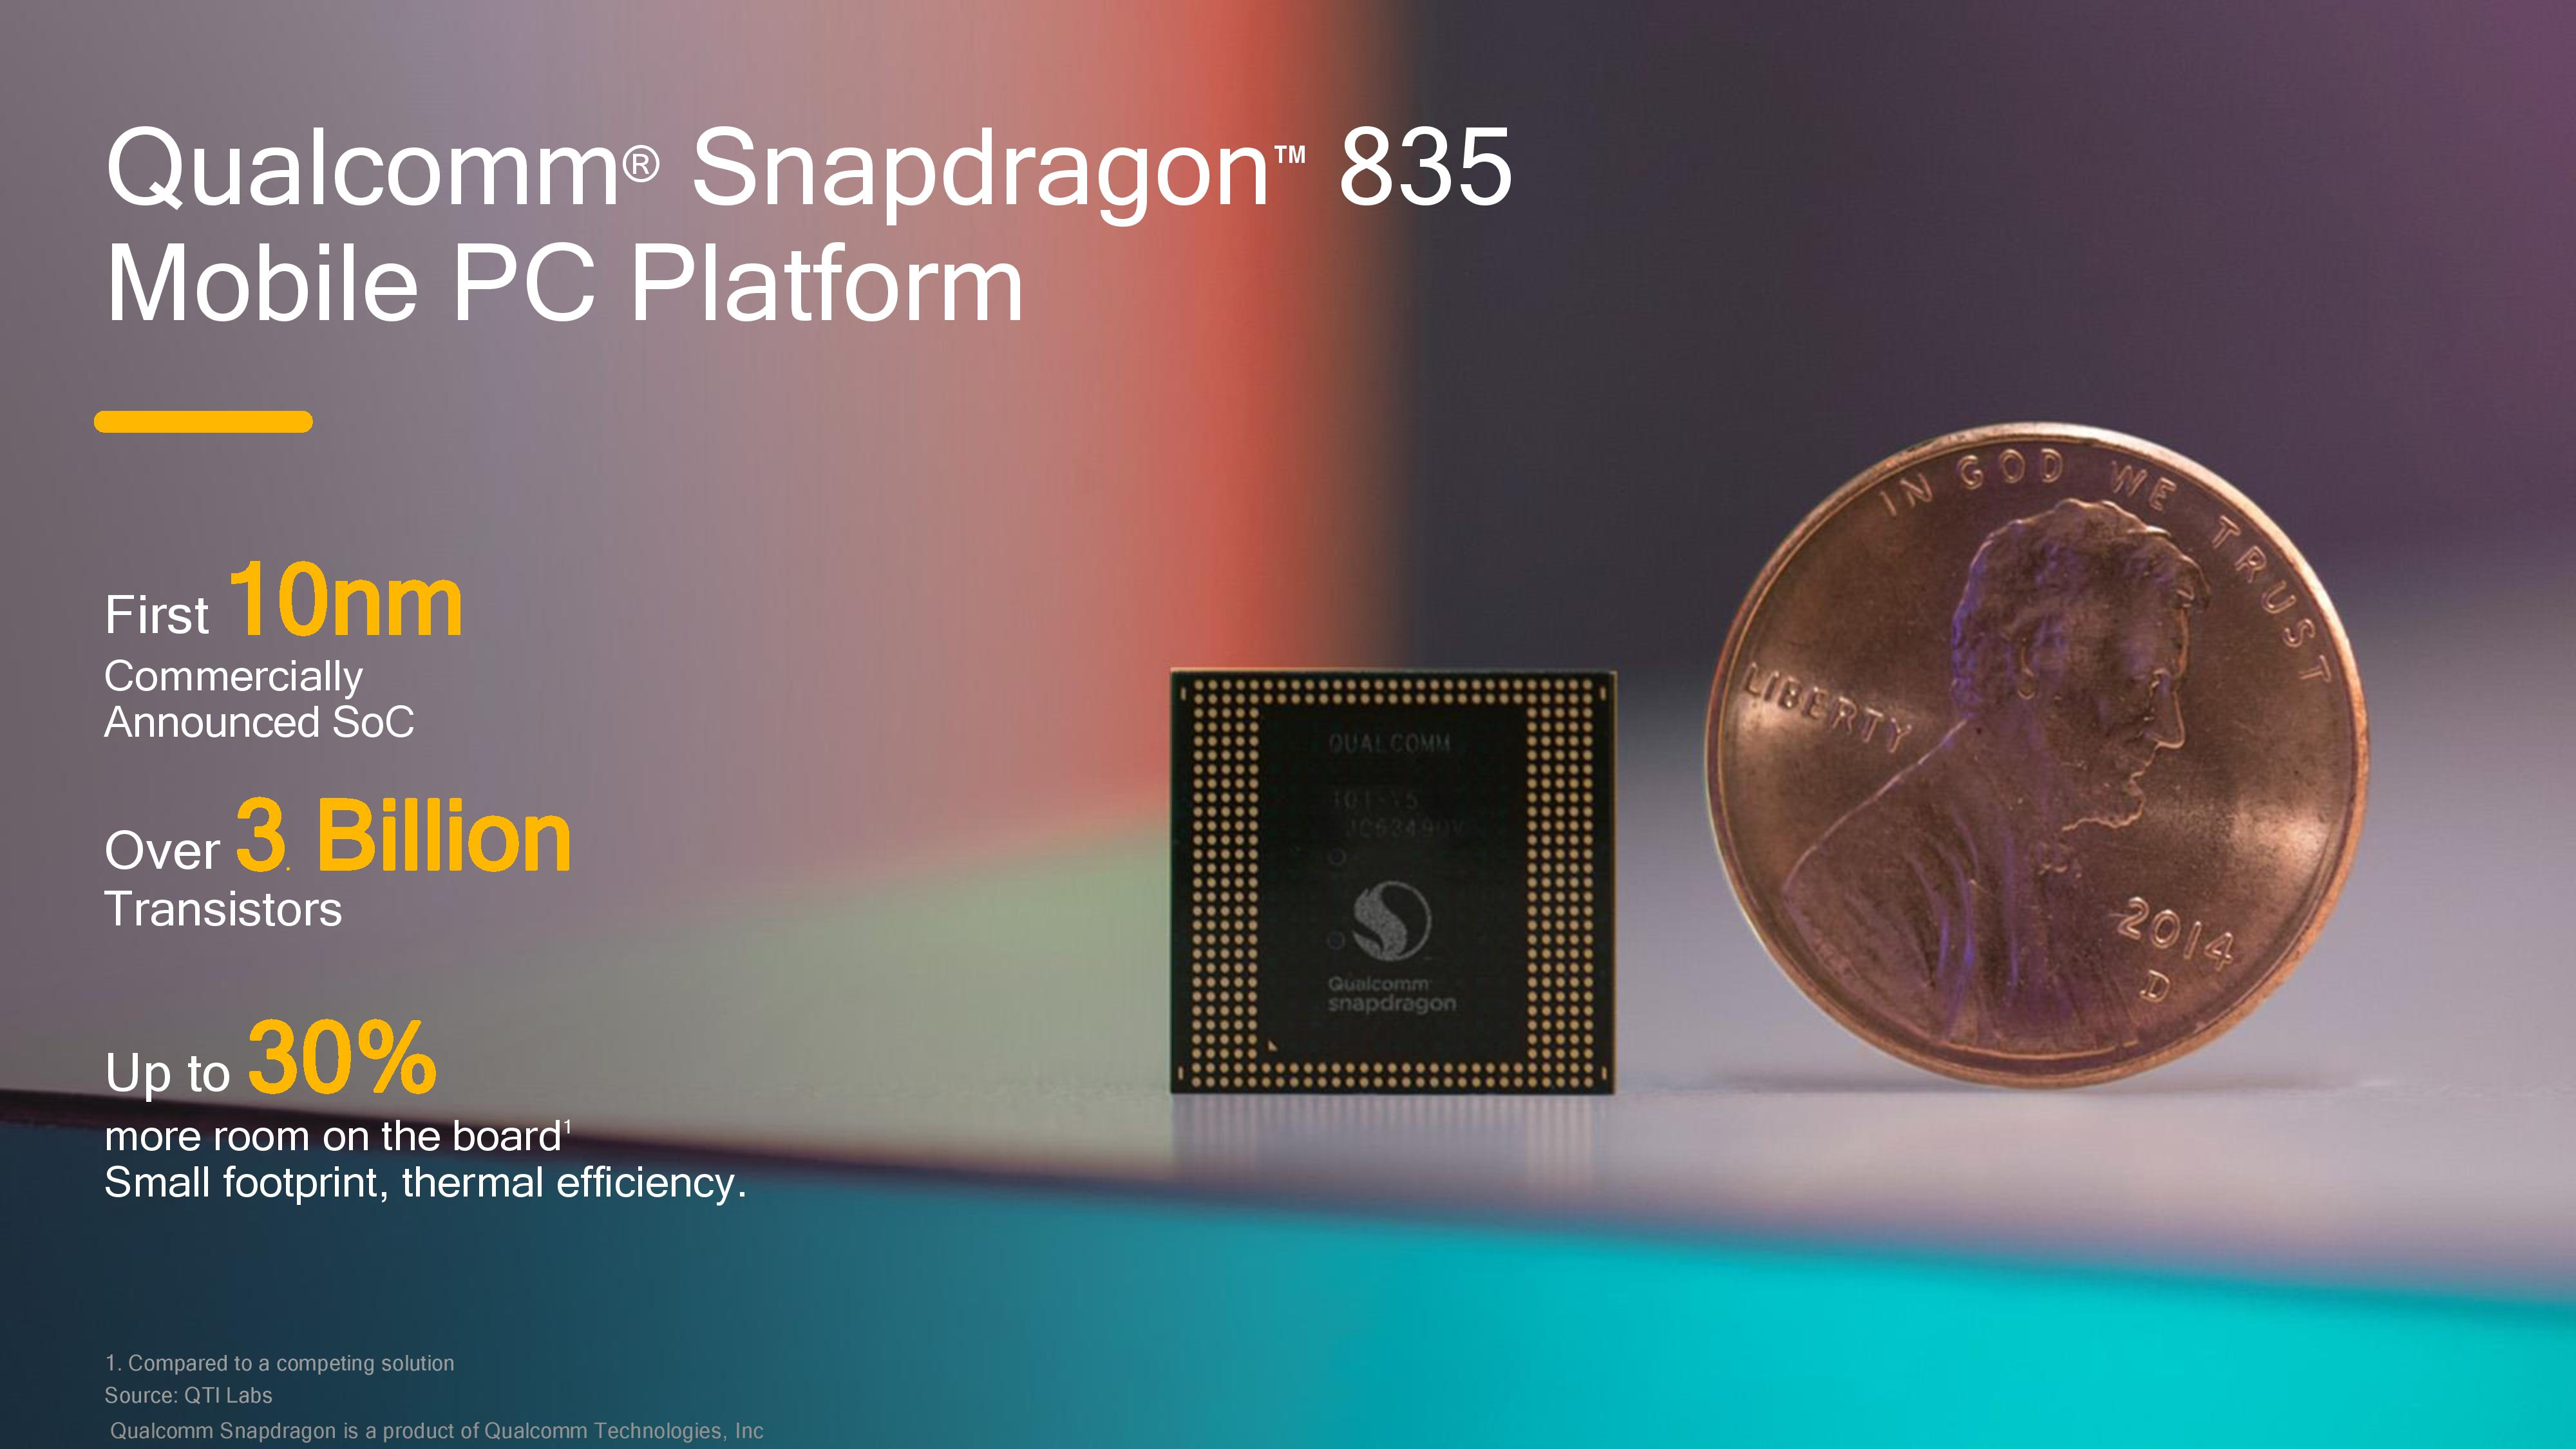 Microsoft Launches Windows 10 On ARM: Always Connected PCs